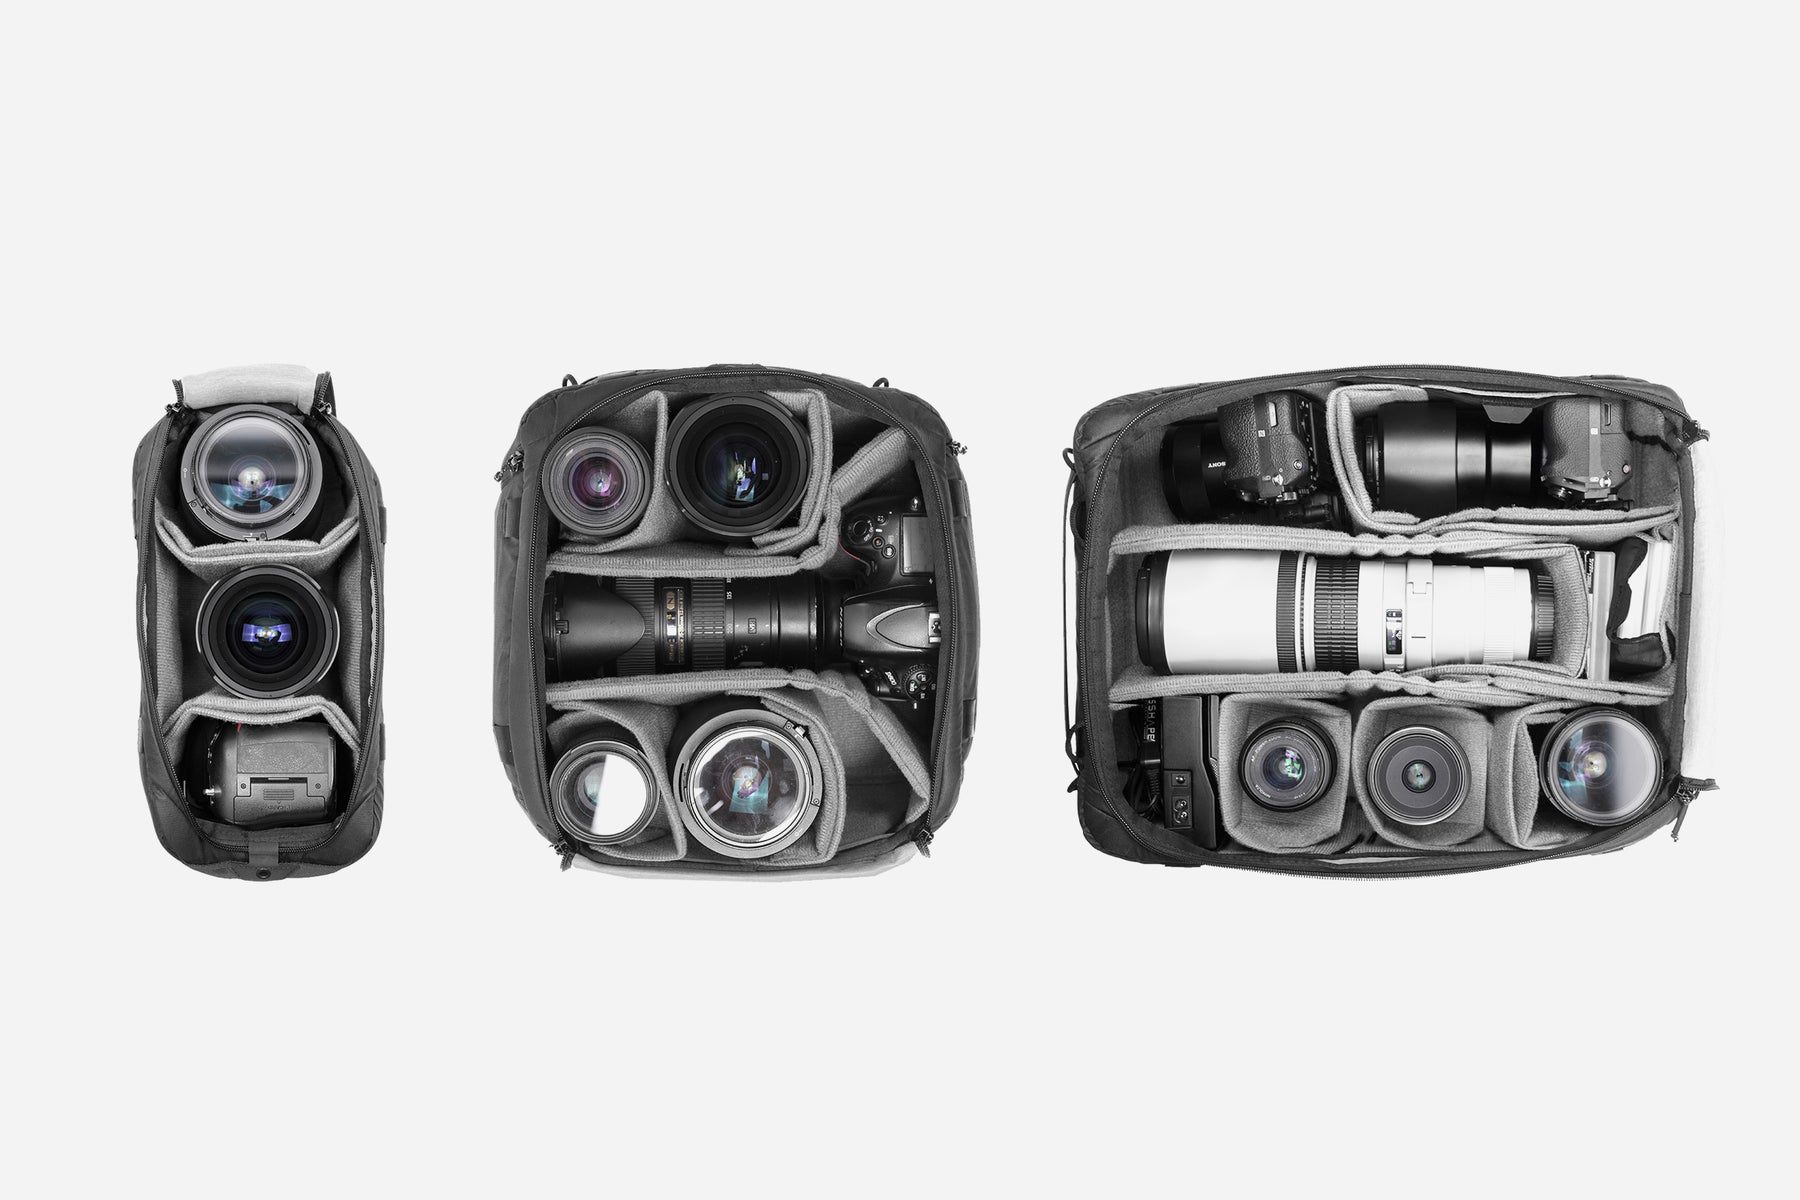 The Peak Design Camera Cubes, Organise & Protect Your Camera Gear